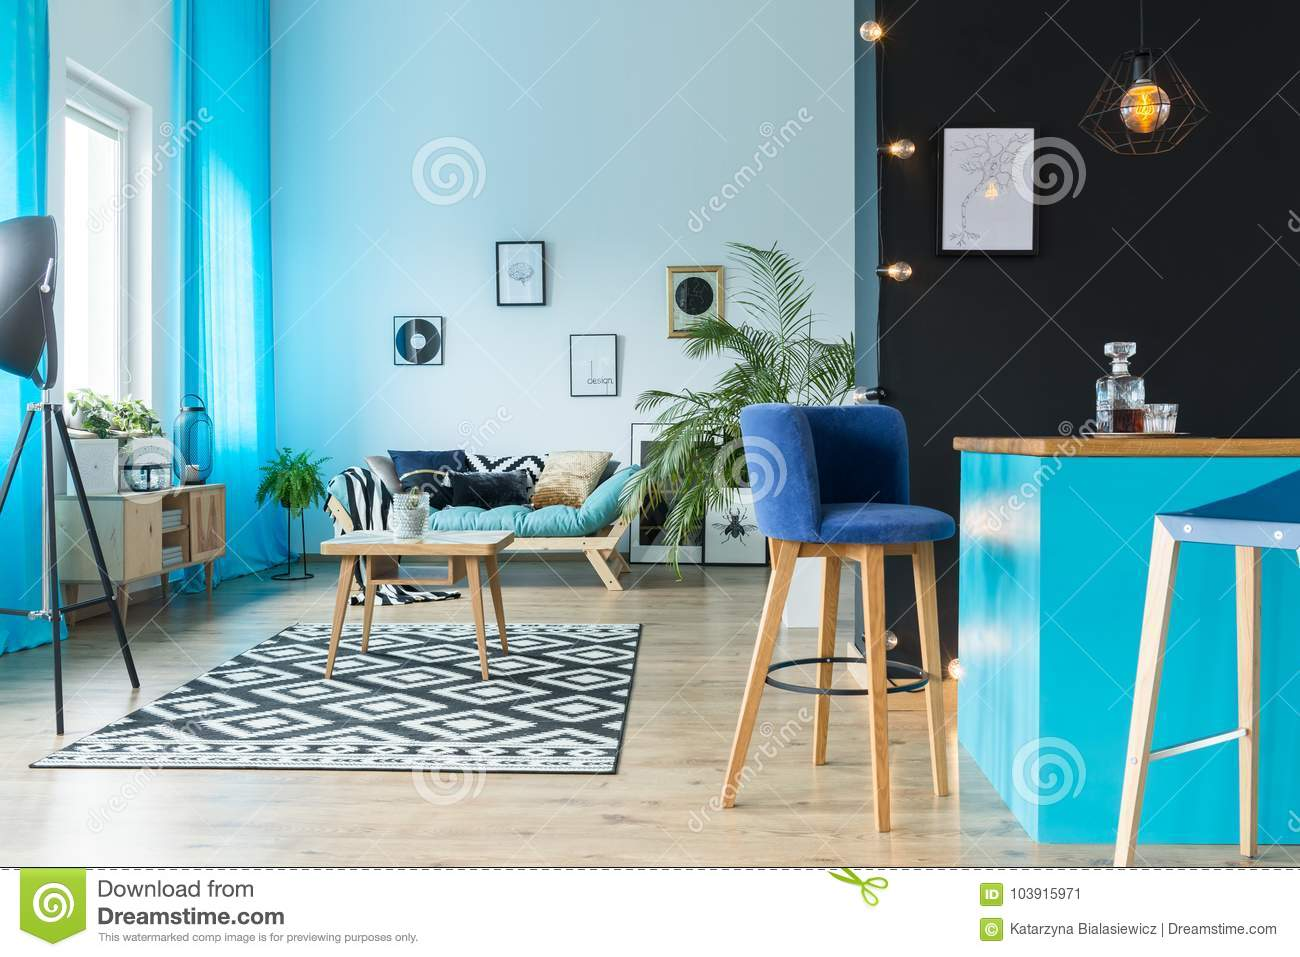 Living Room With Kitchen Annex Stock Image - Image of dining, black ...